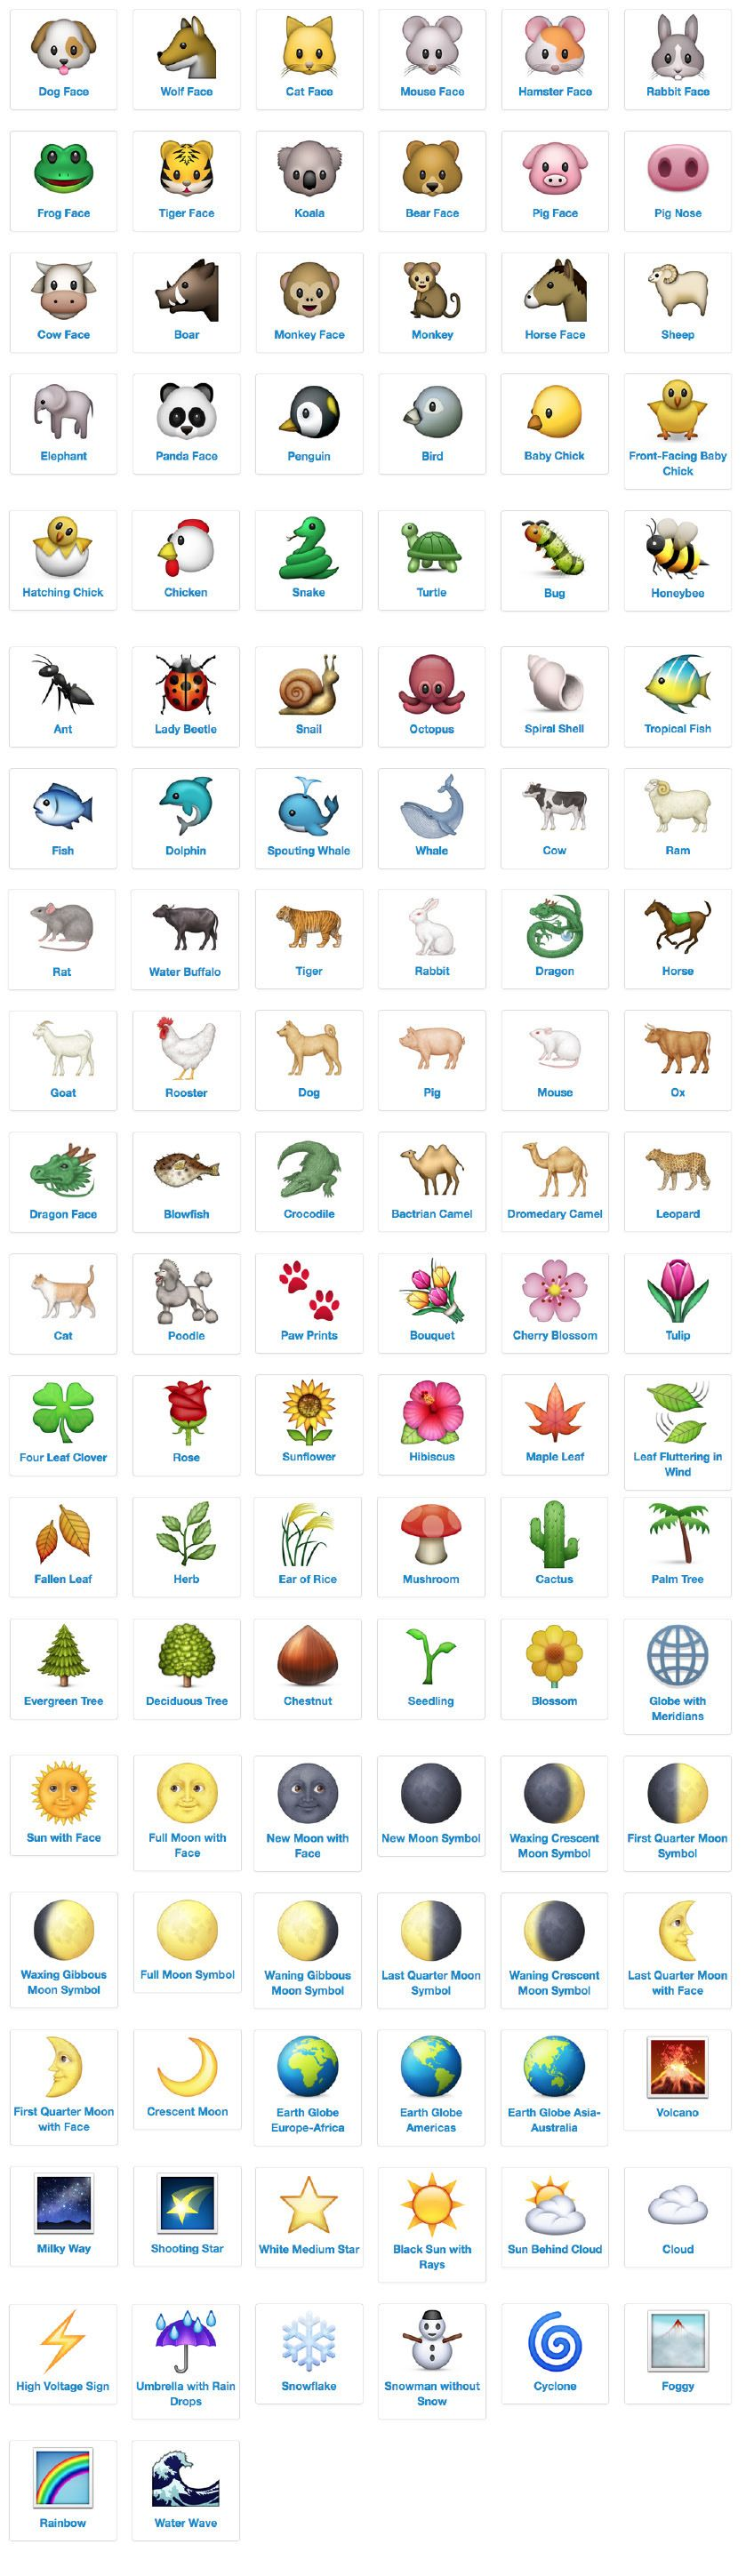 emoji icon list nature and animals with meanings and